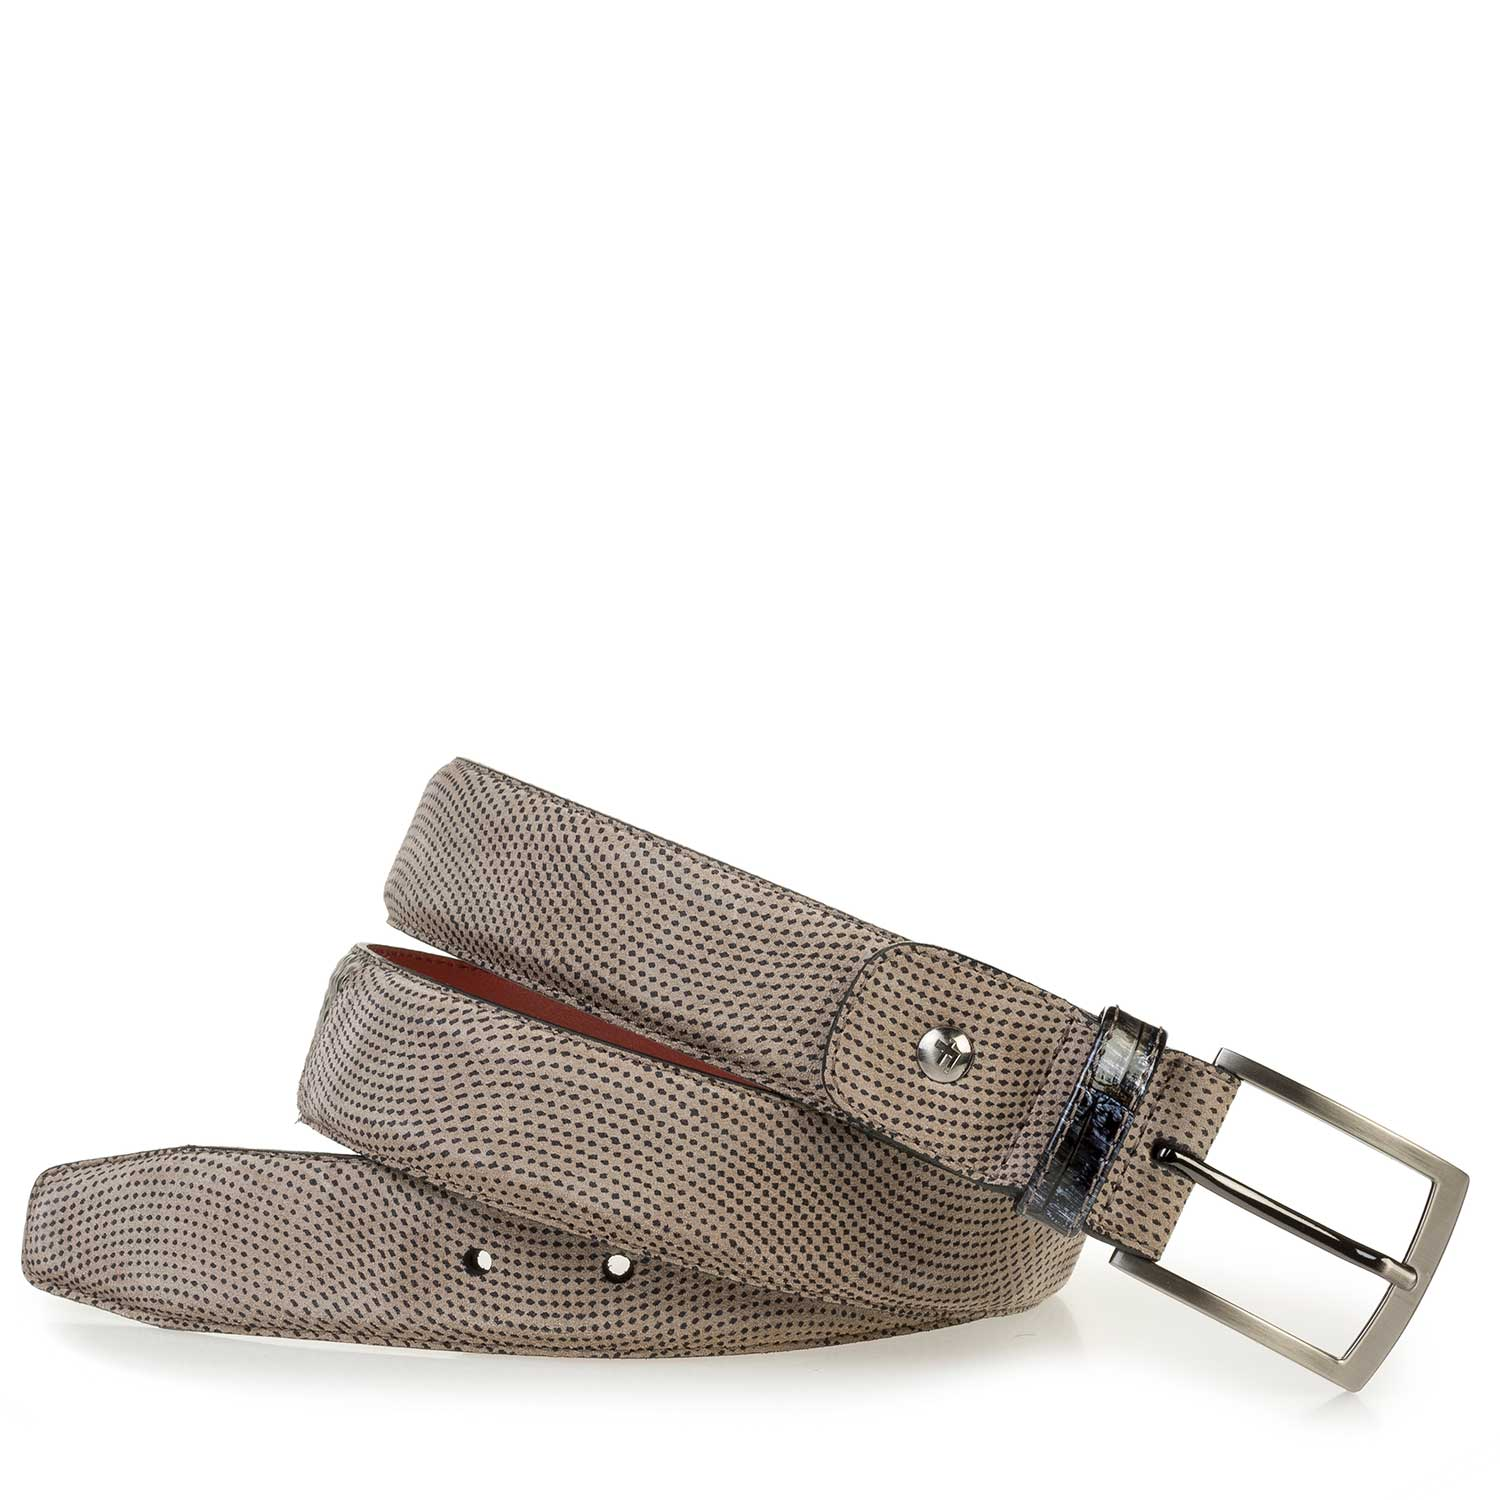 75188/32 - Light taupe-colored rough suede leather belt